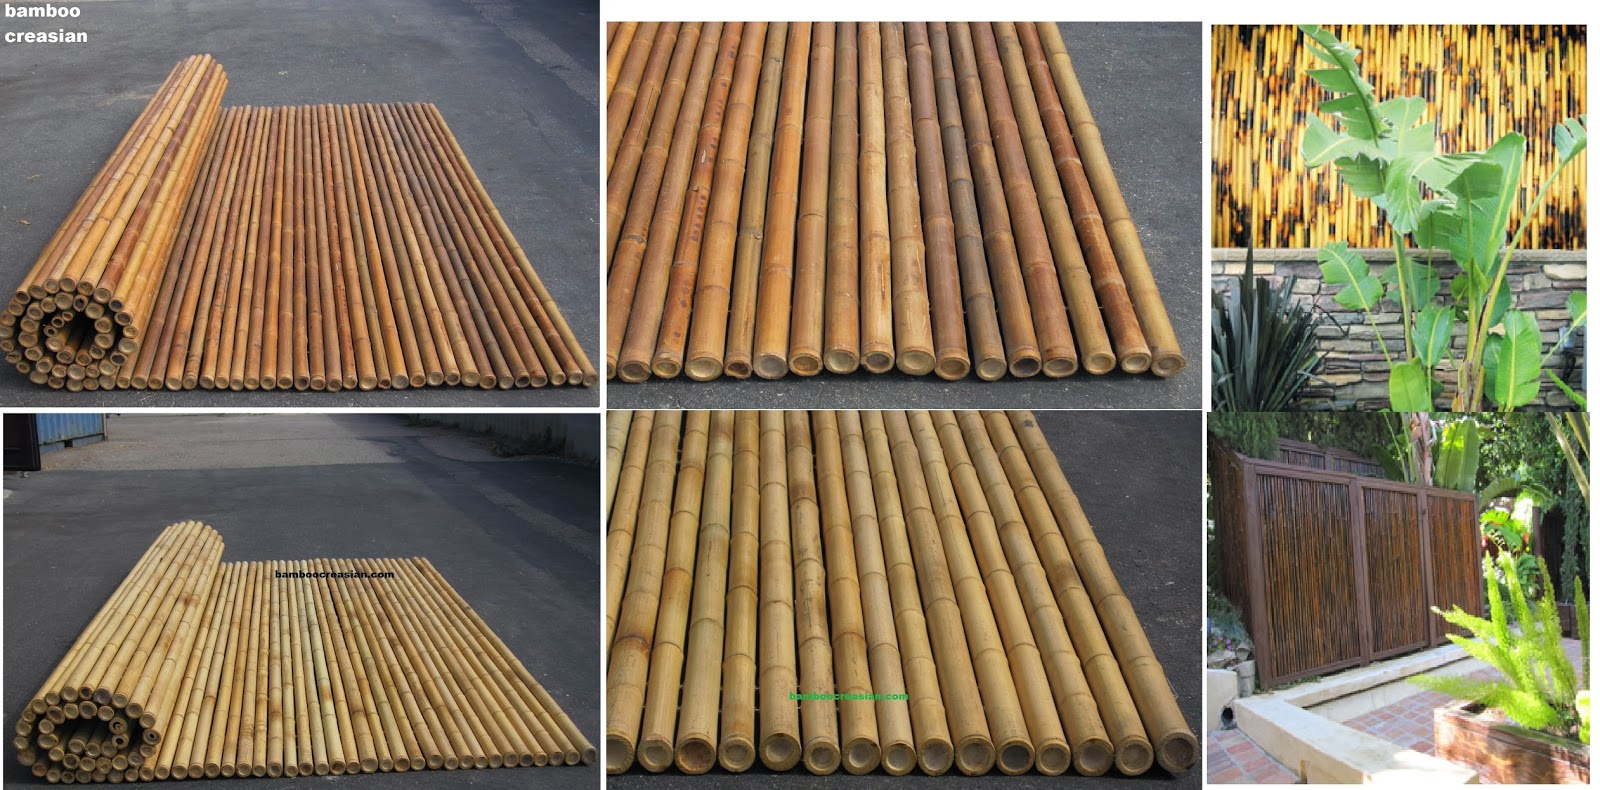 Bamboo Fence Canada Allbamboo Product4sale Decorative Bamboo Fencing Wainscot Ply